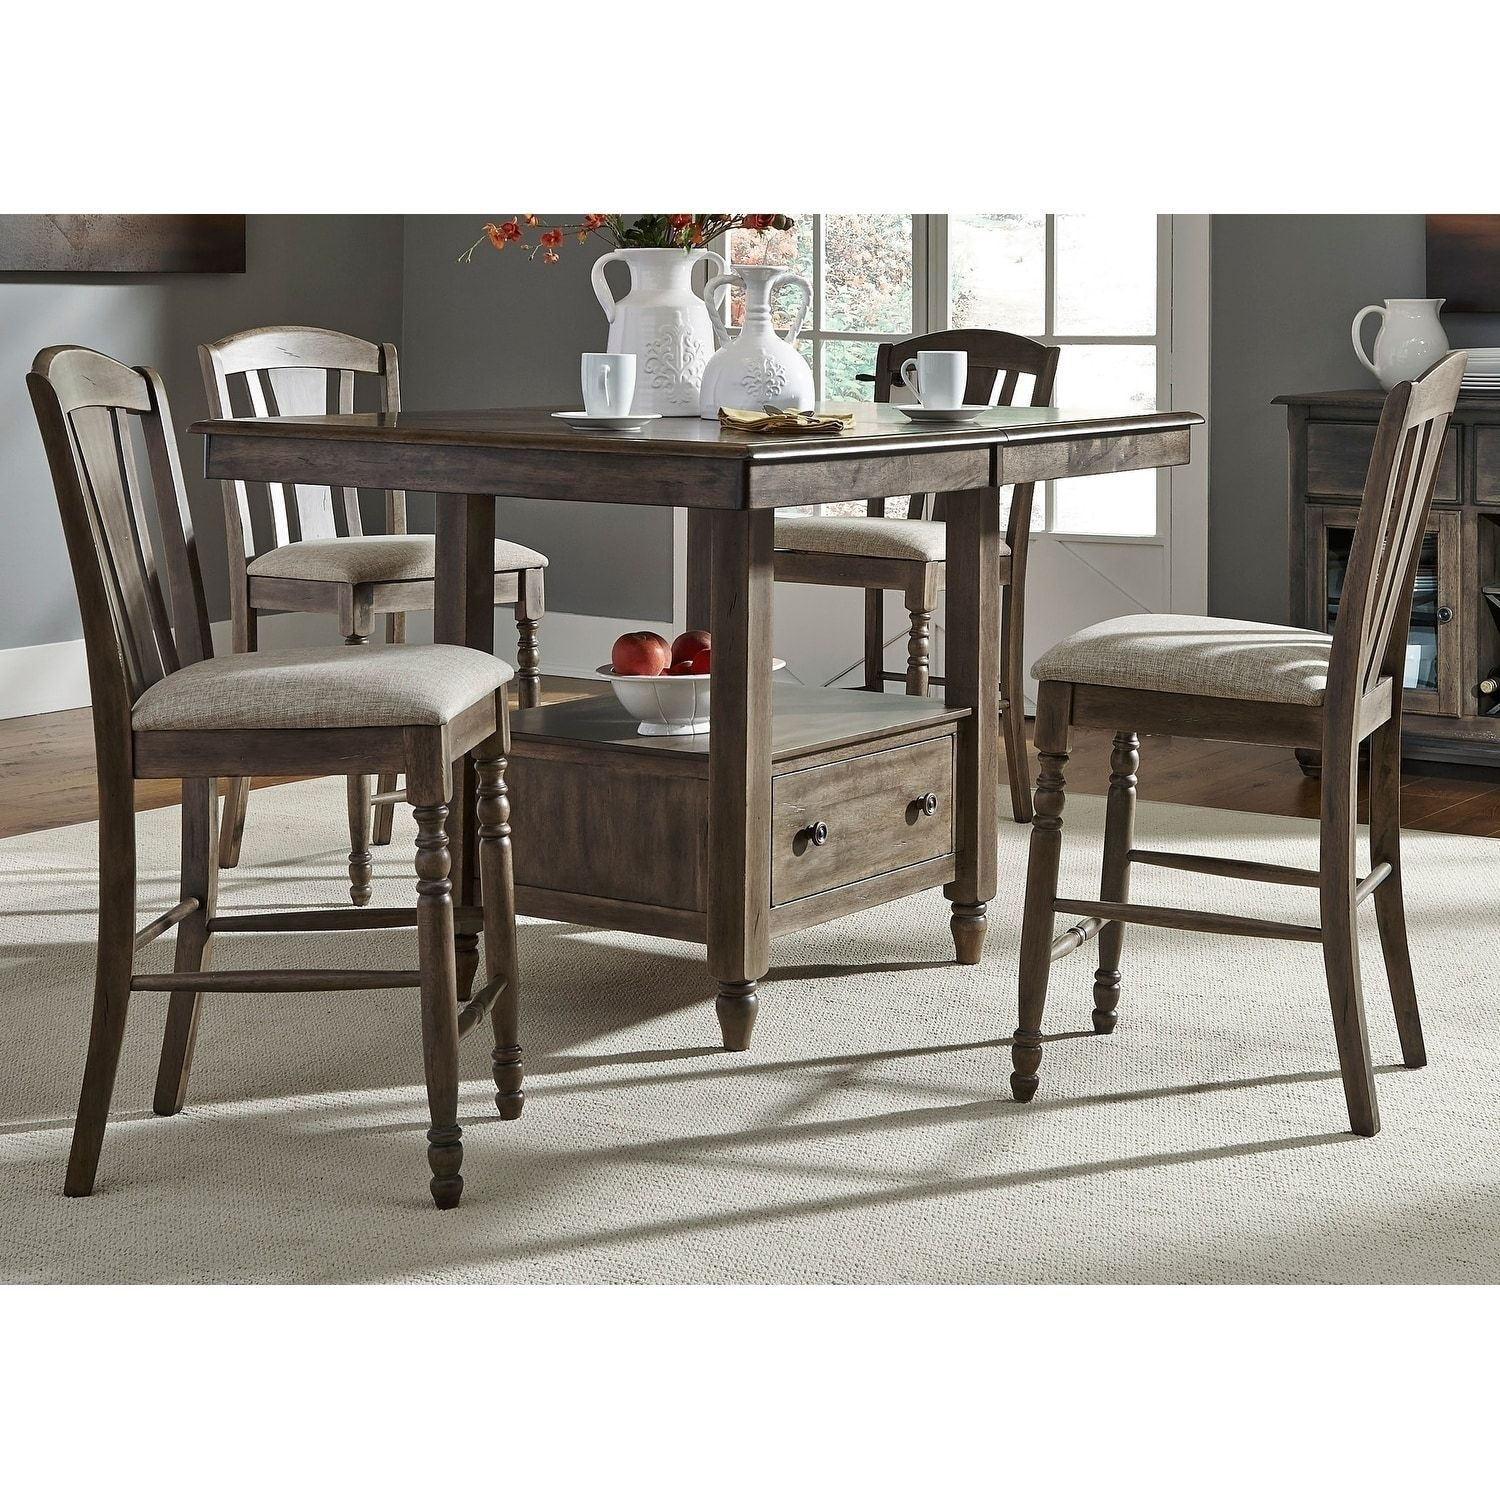 Liberty Candlewood Weather Grey 7 Piece Slat Back Gathering Dinette Within Most Popular Combs 5 Piece Dining Sets With  Mindy Slipcovered Chairs (Image 14 of 20)